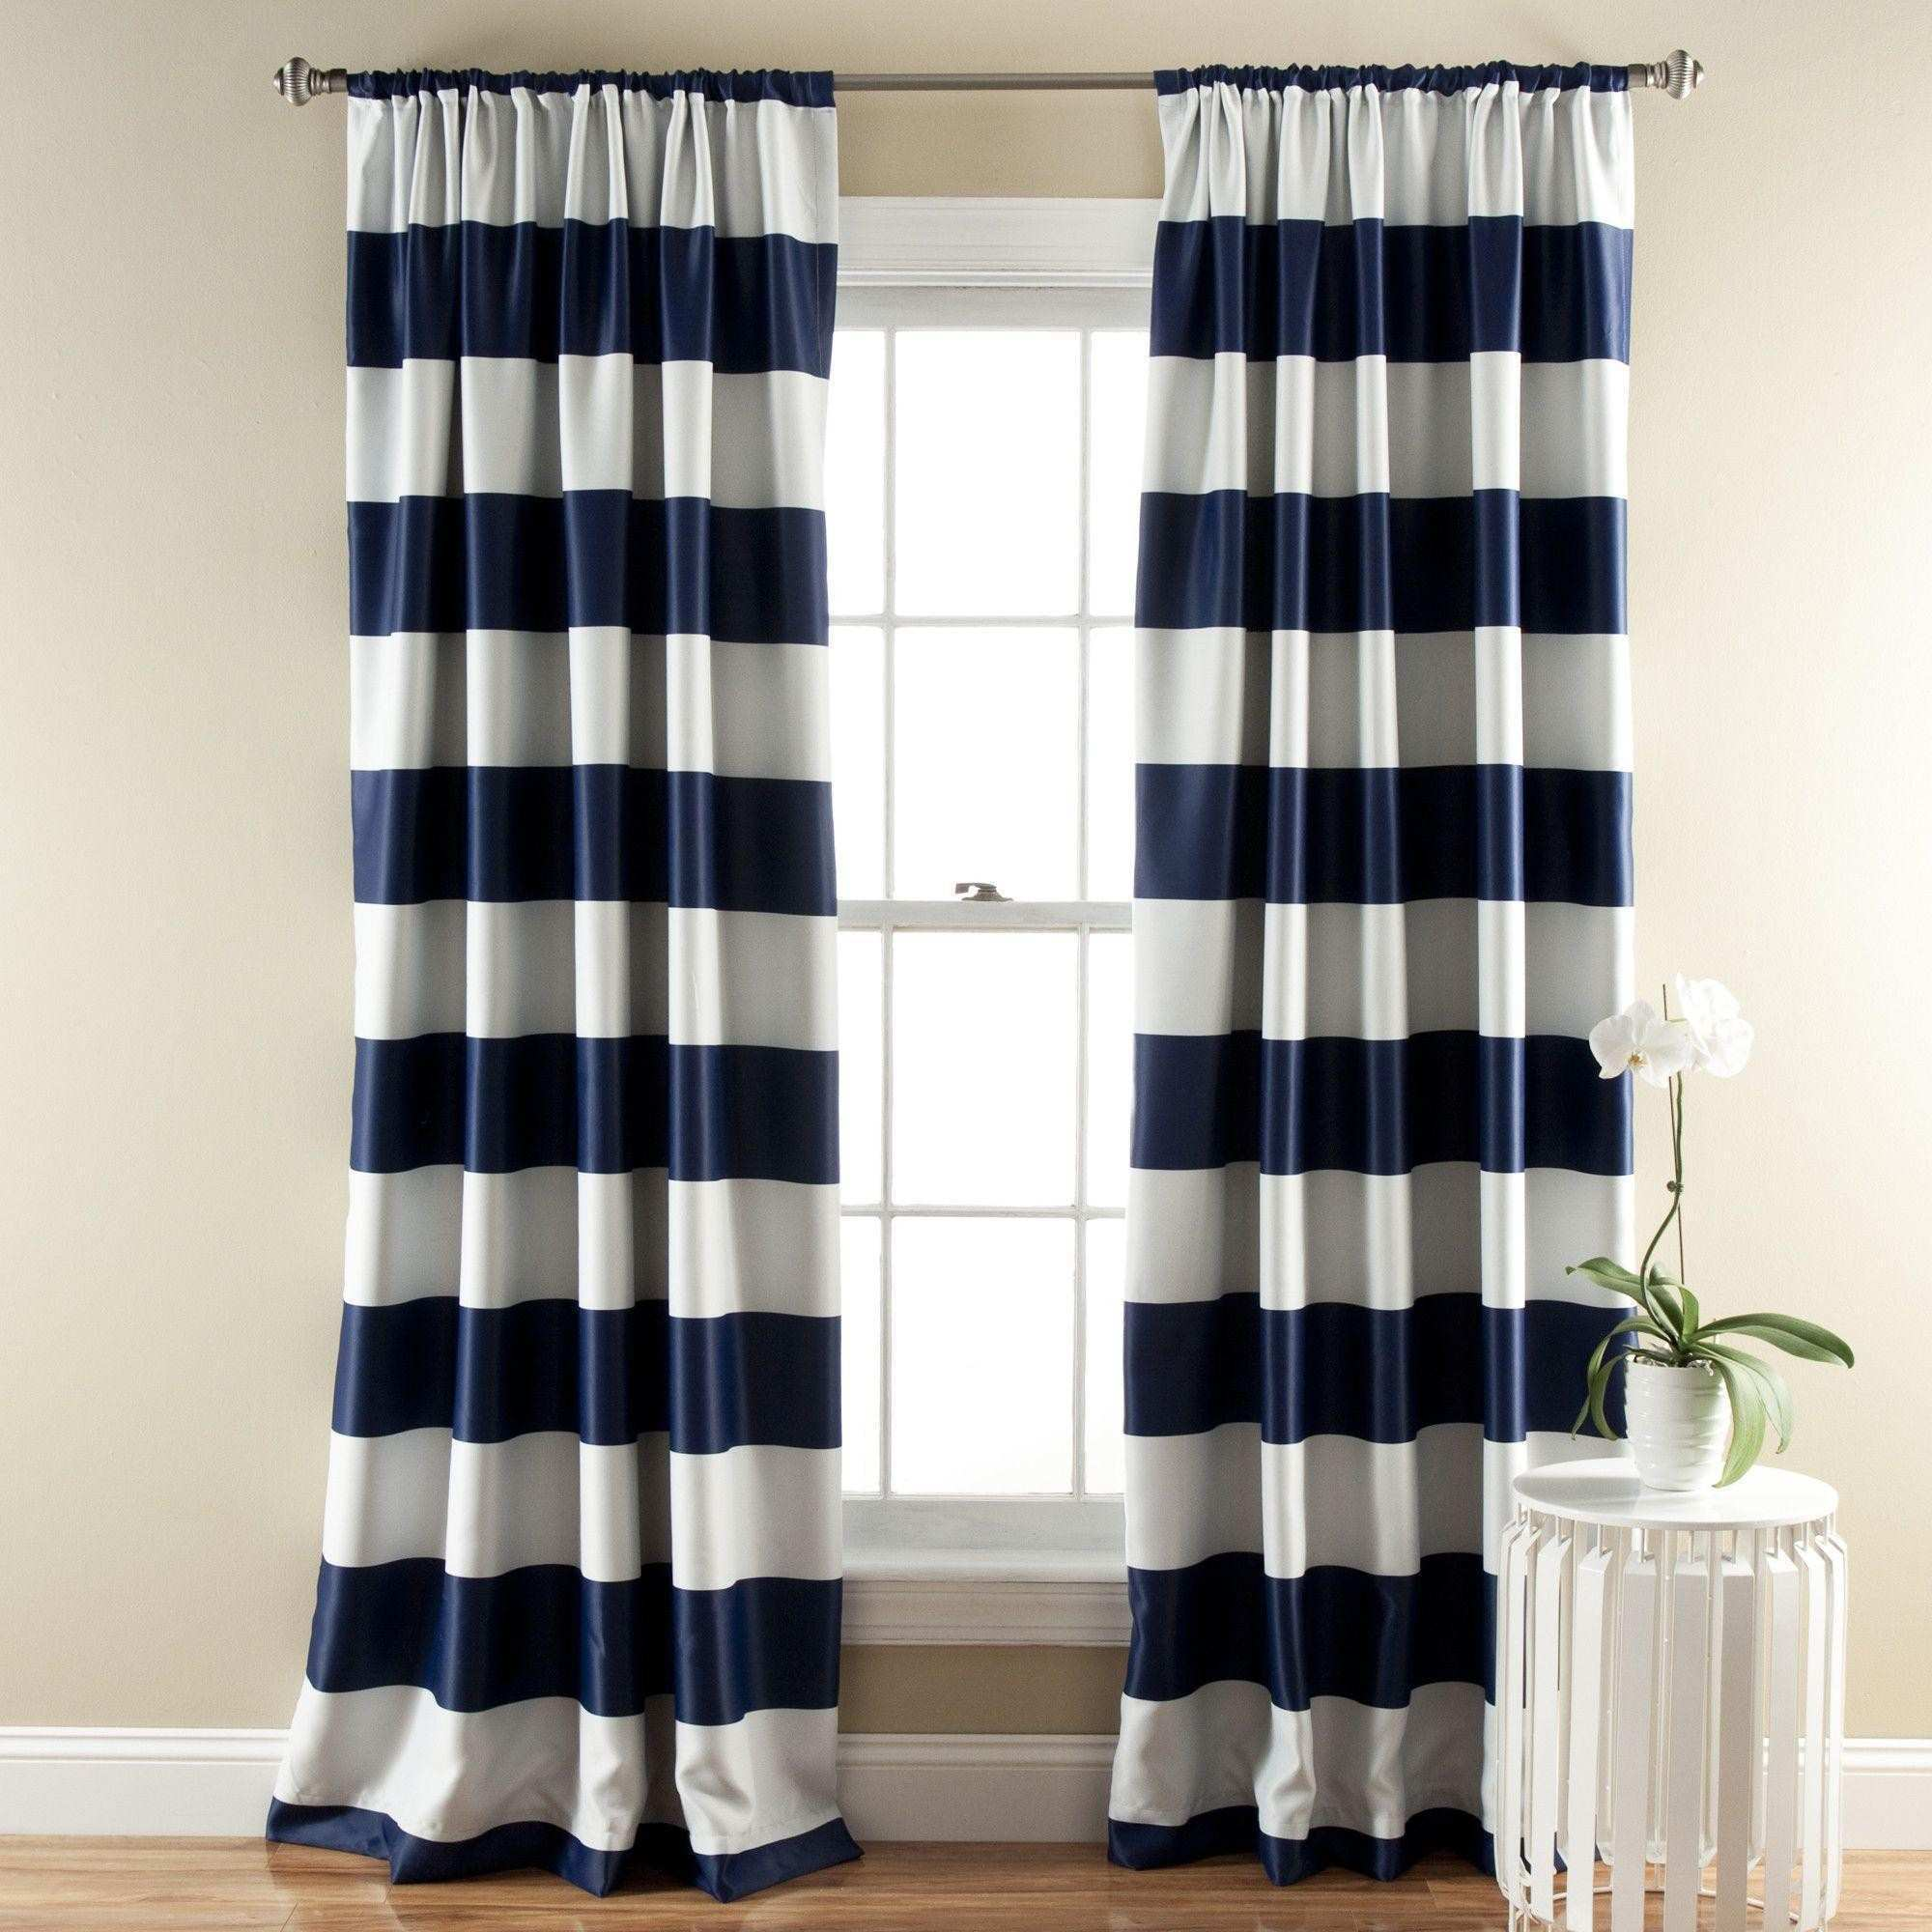 38 New asian Curtains Drapes Image